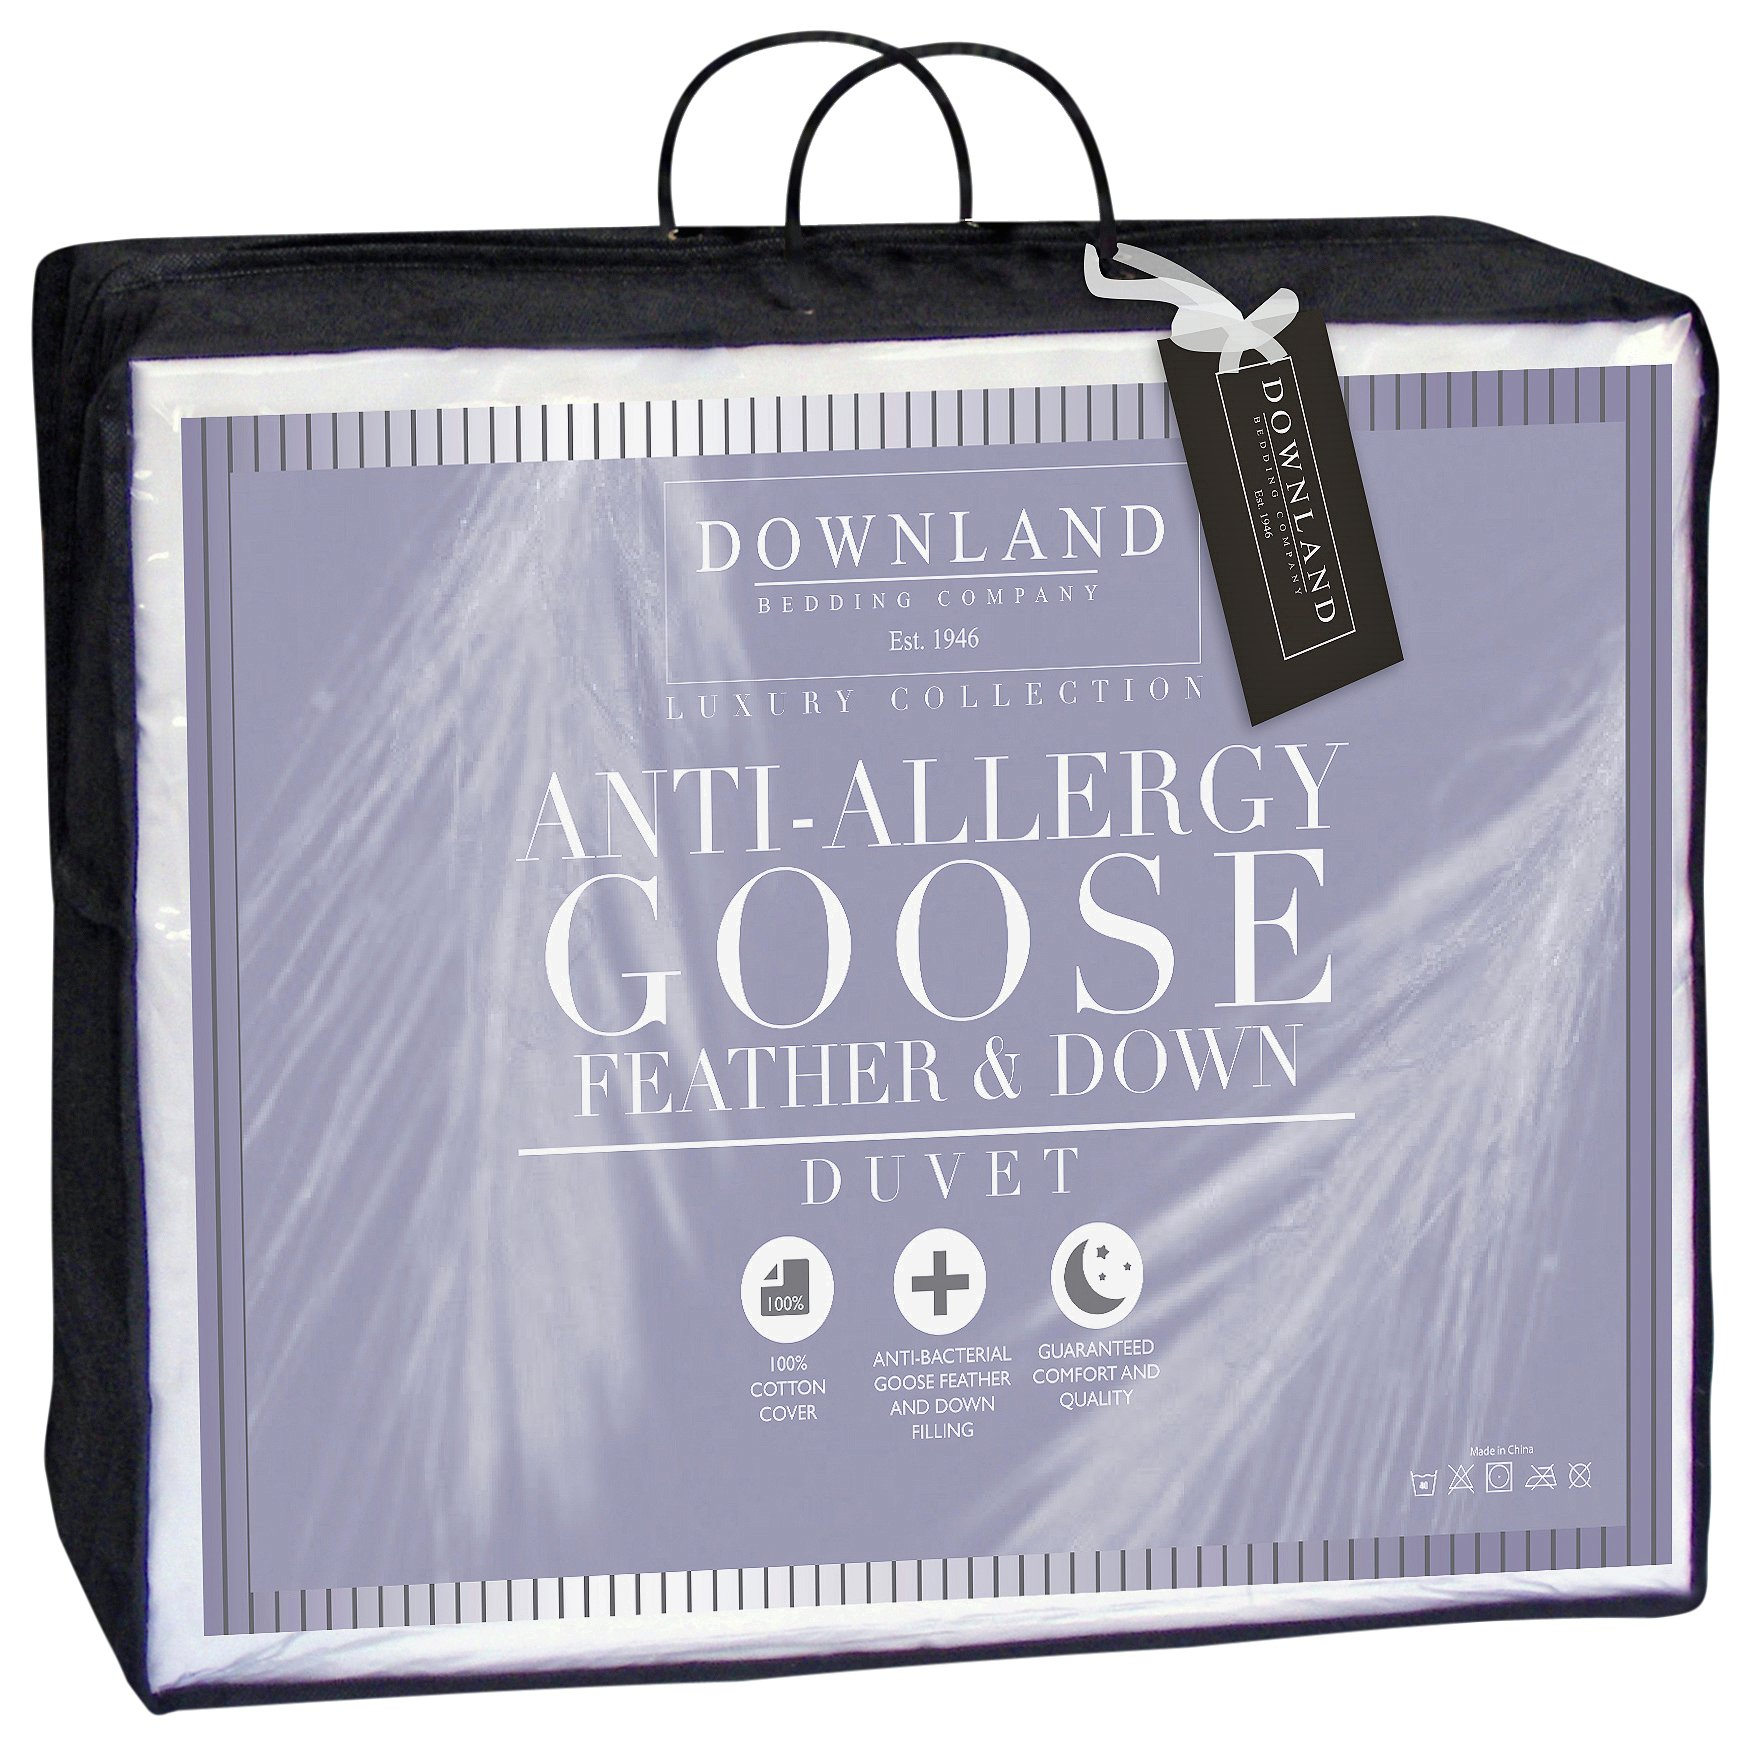 Downland 15 Tog Goose, Feather and Down Duvet - Kingsize